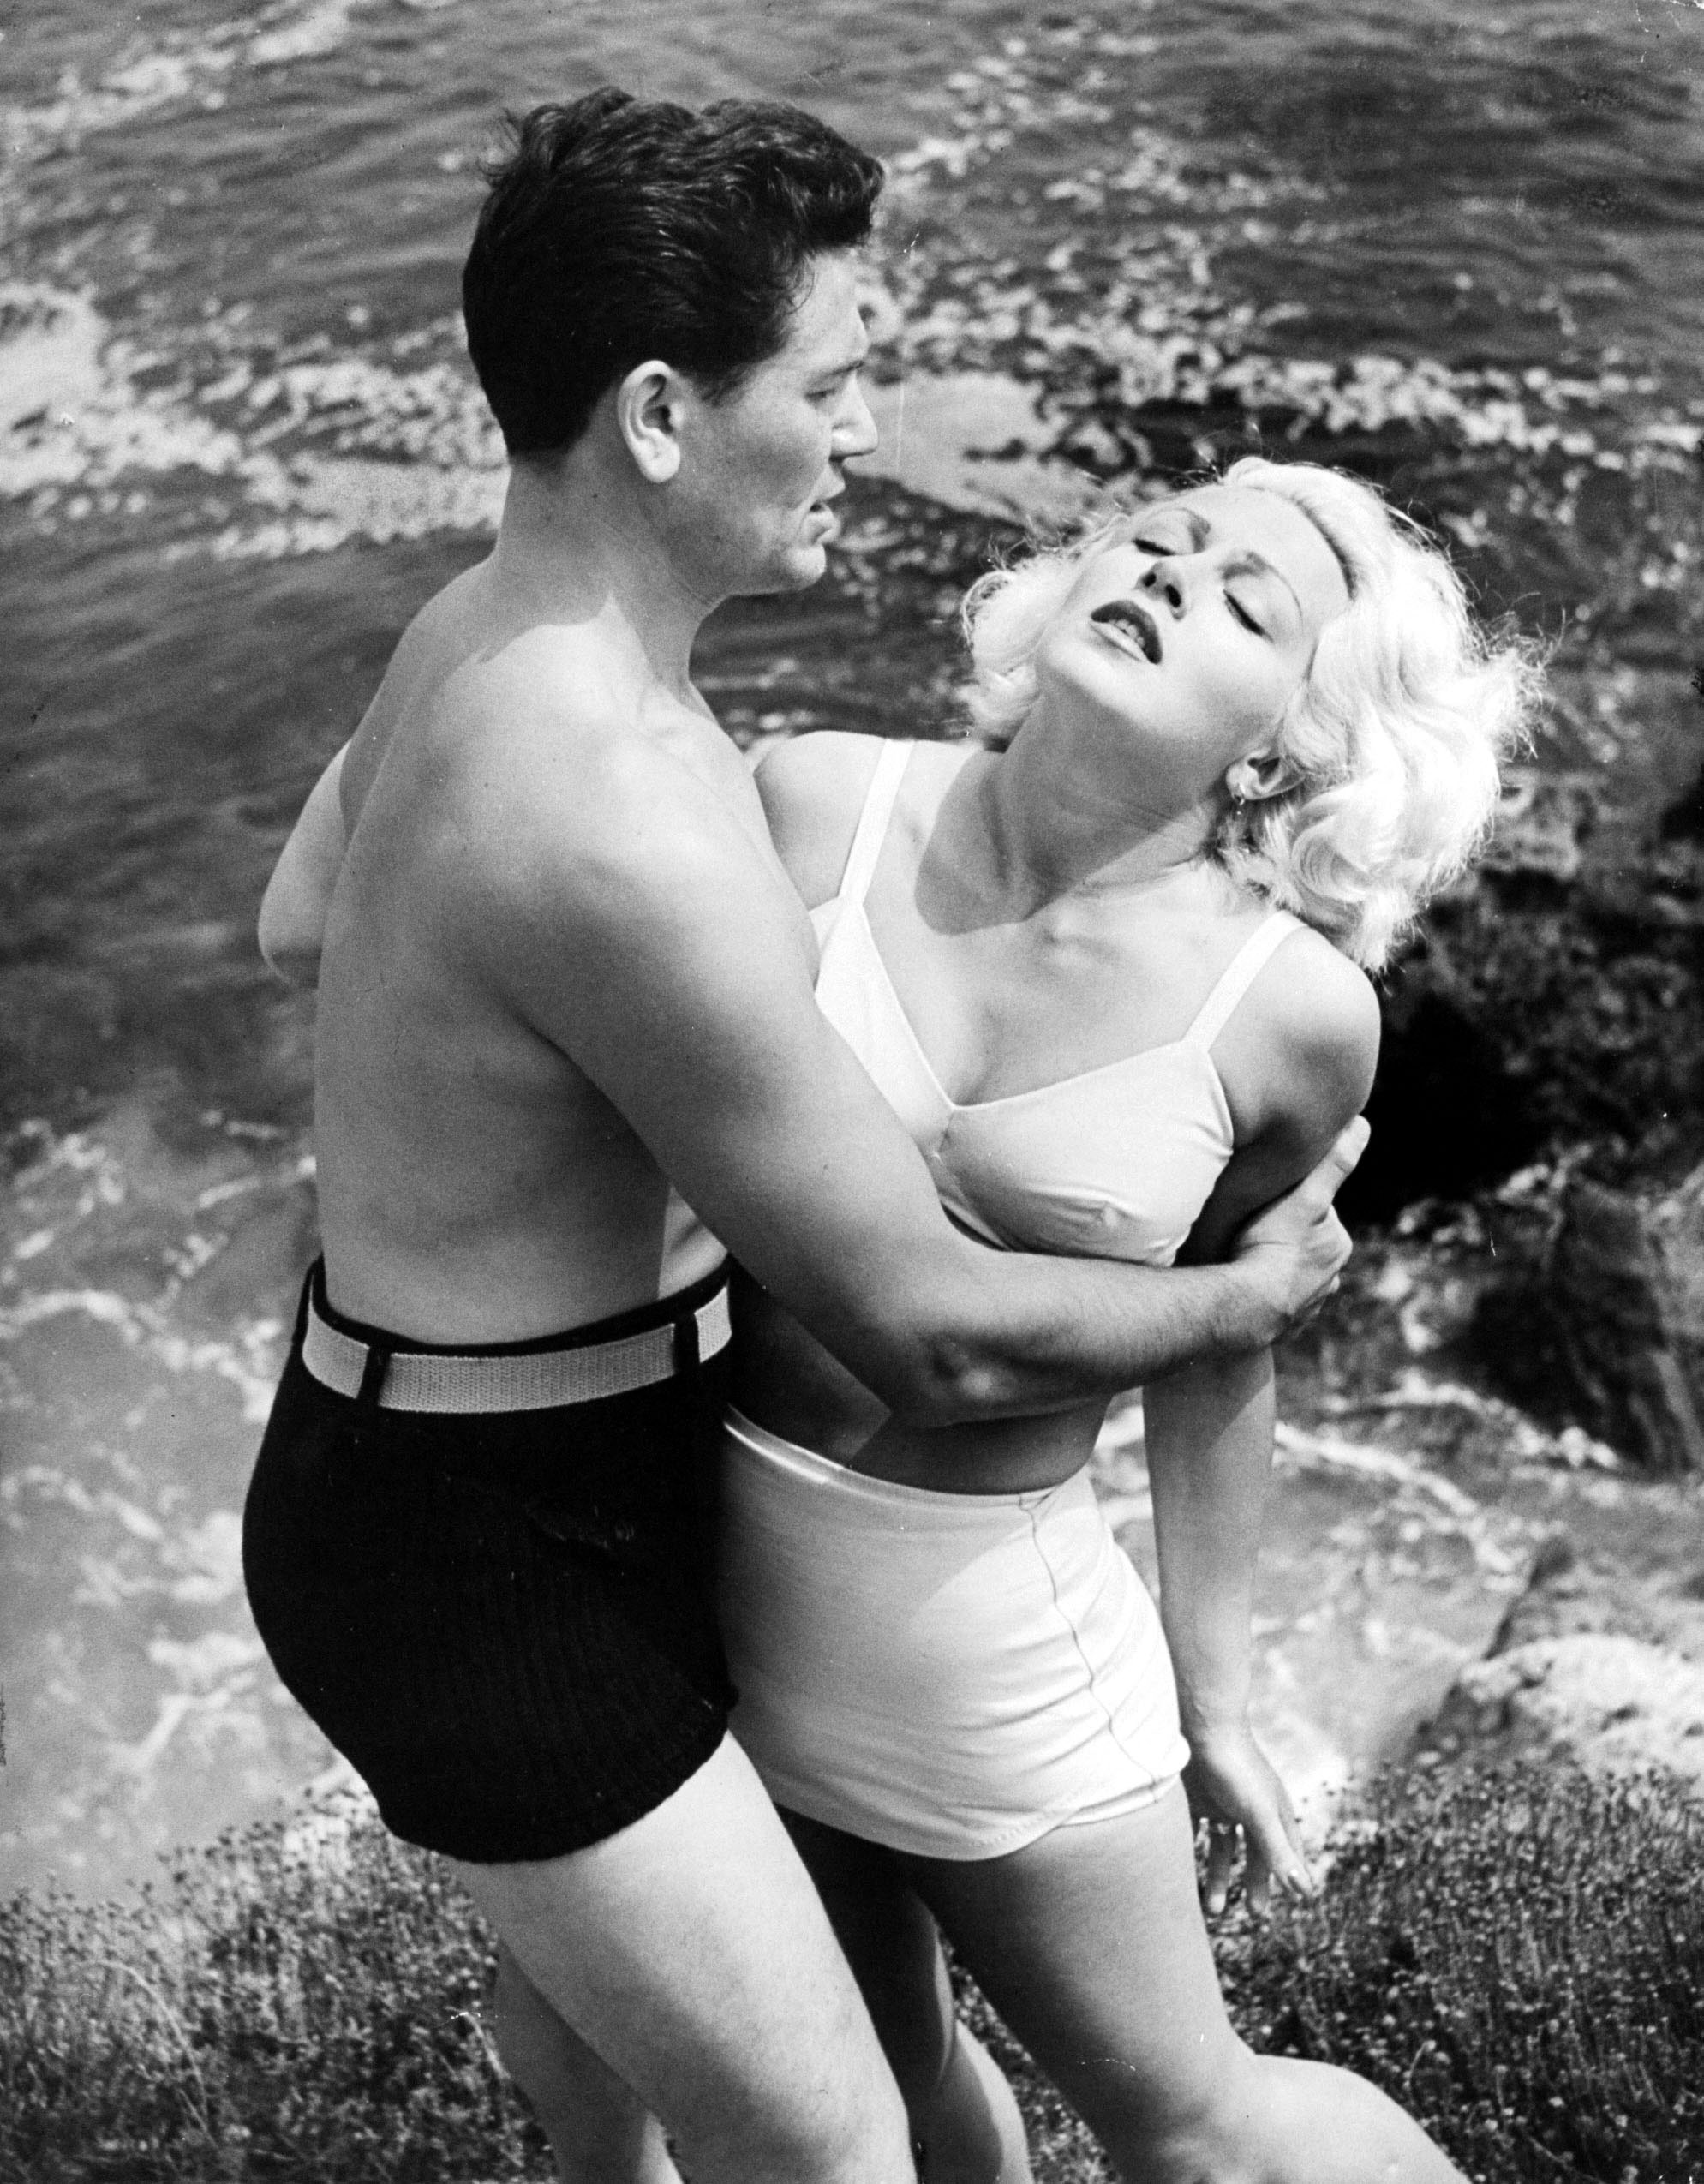 Lana Turner, who was nominated once. Pictured here with John Garfield on Laguna Beach in a scene from <i>The Postman Always Rings Twice</i>, 1945.